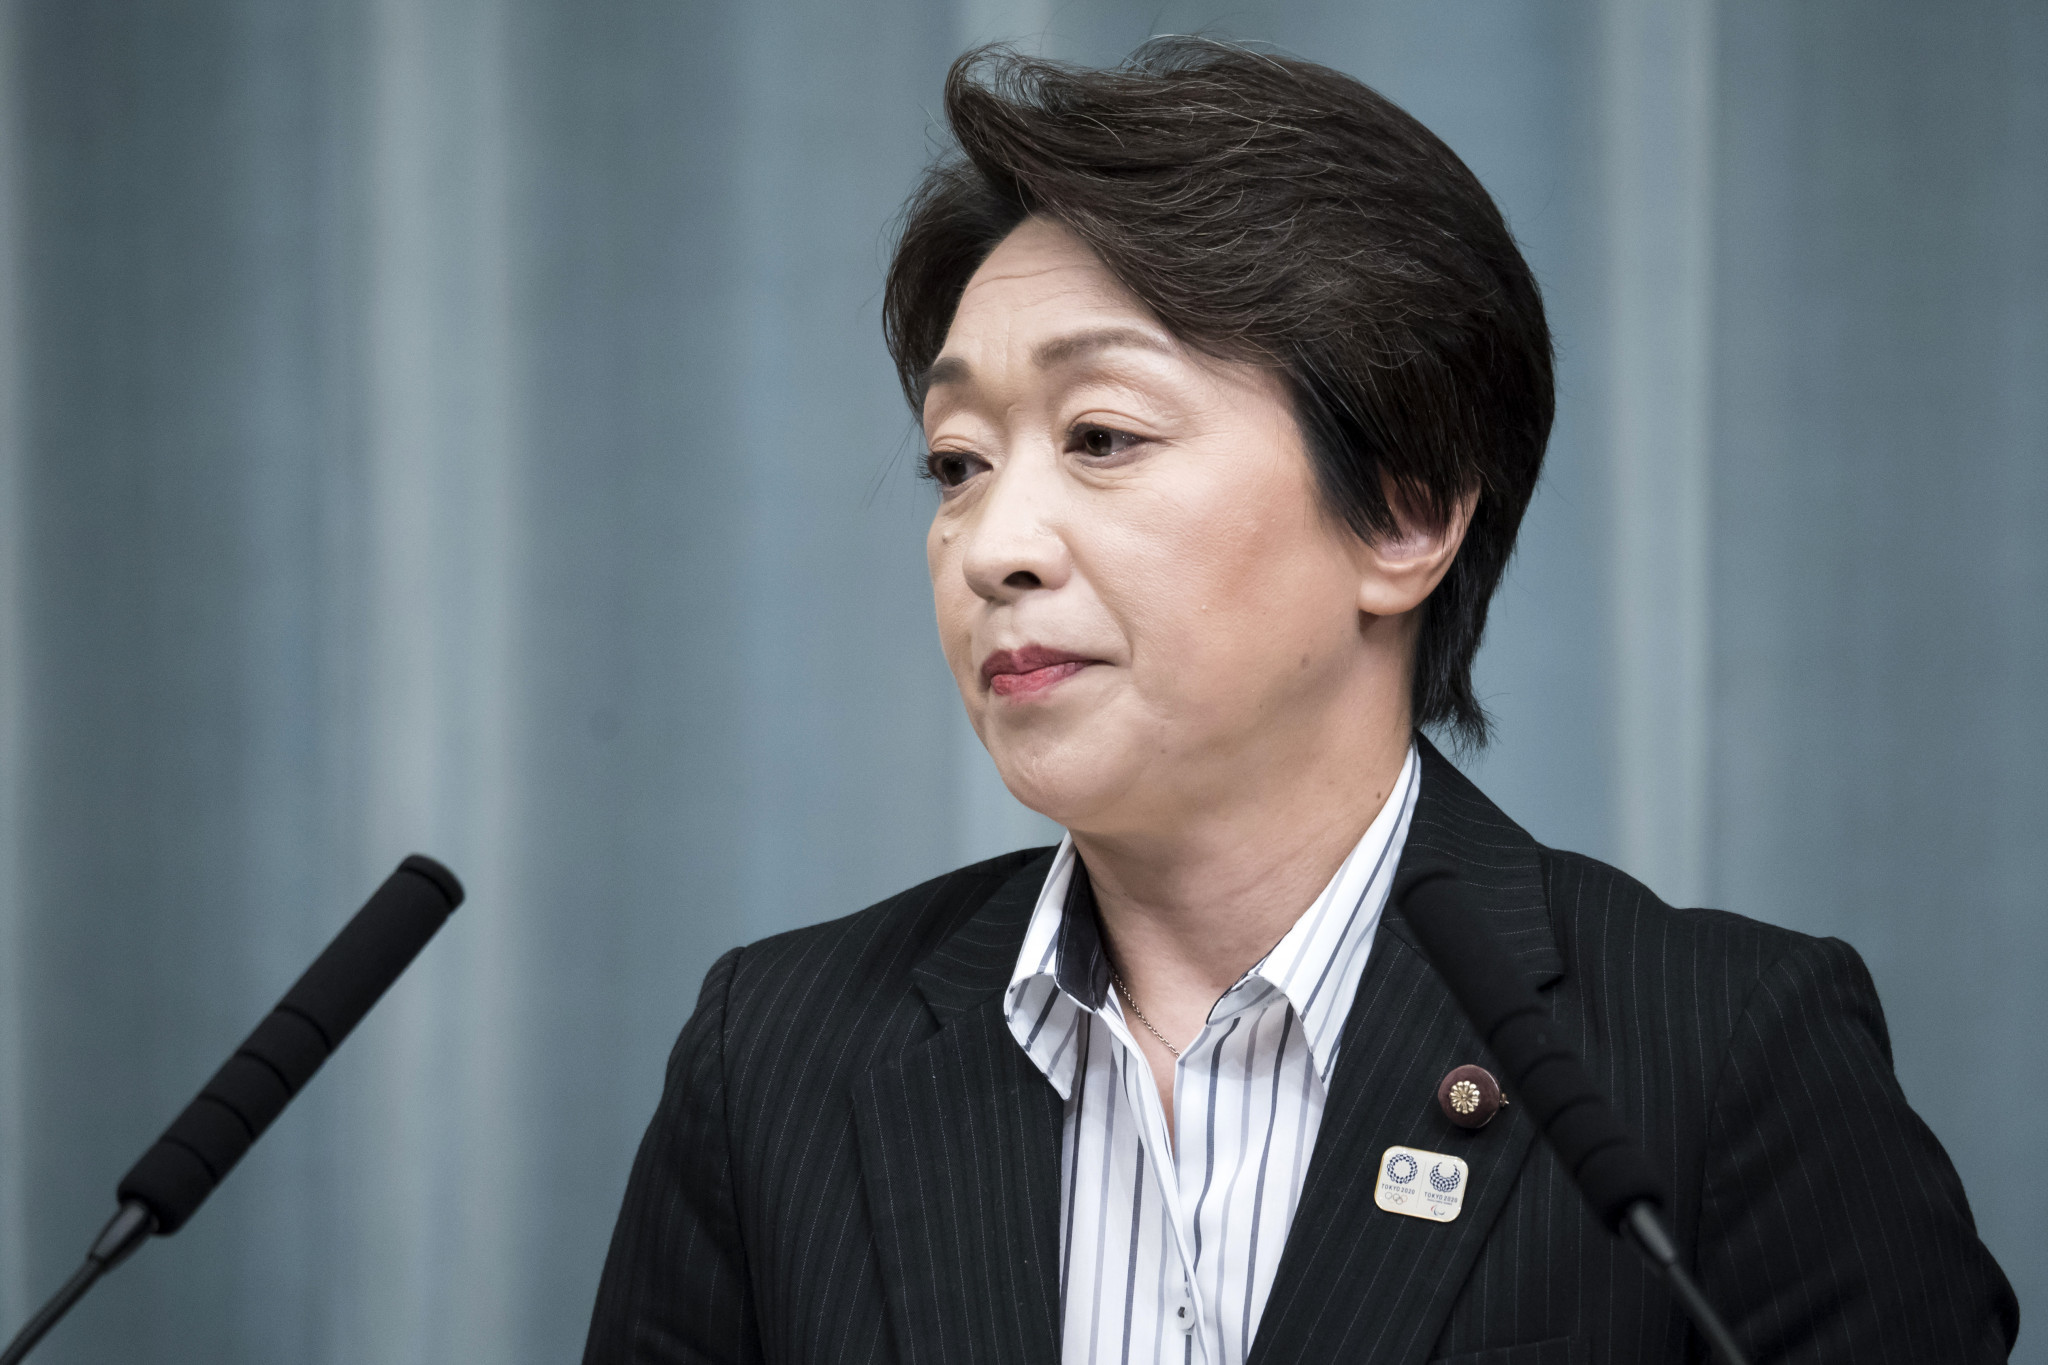 Seiko Hashimoto will continue her role as the Minister of the Olympics ©Getty Images